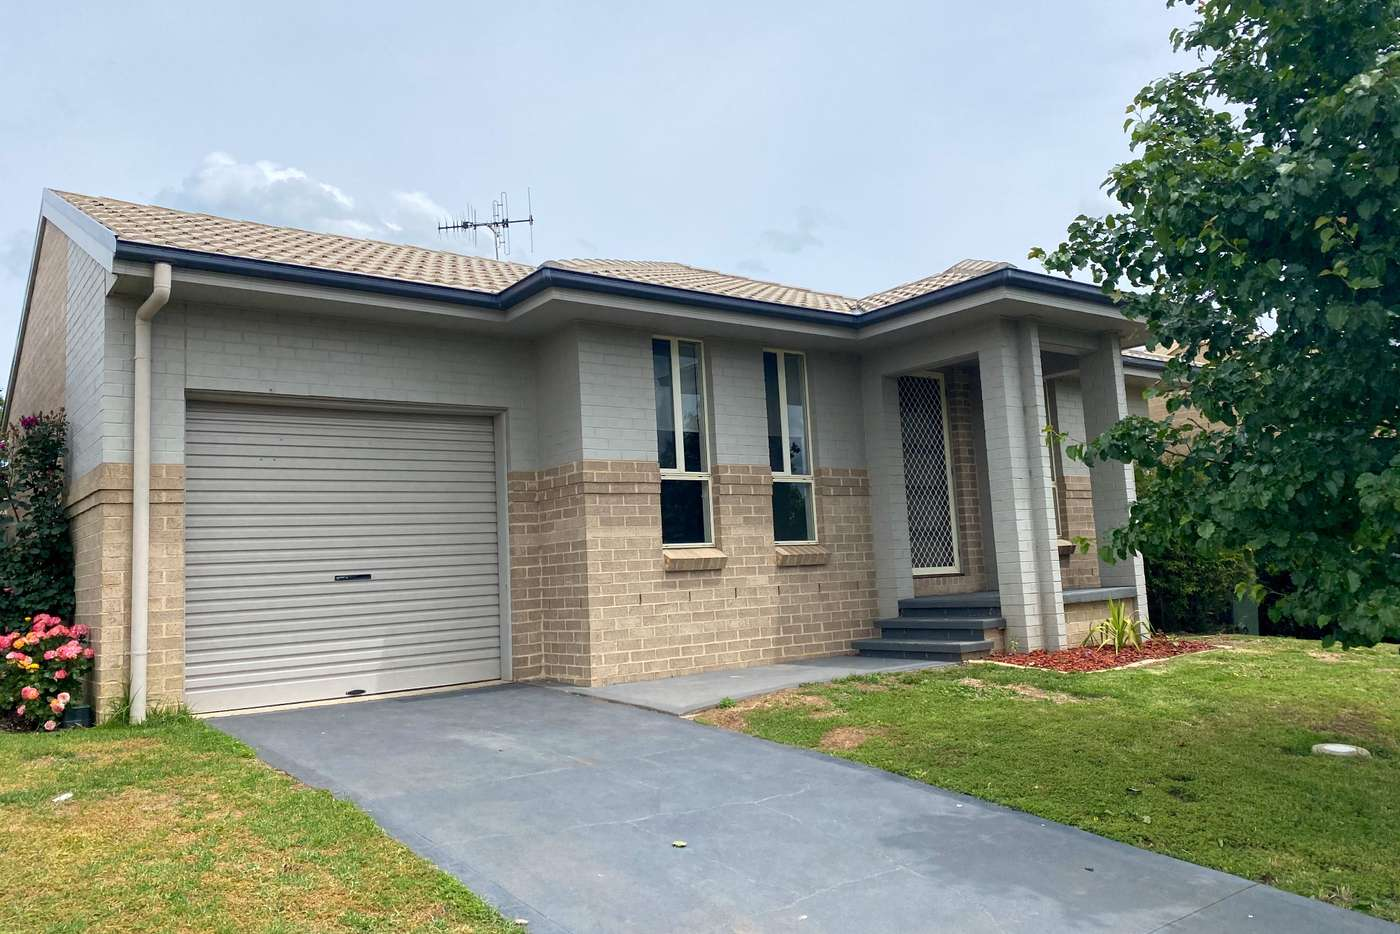 Main view of Homely house listing, 14 Spadacini Place, Goulburn NSW 2580